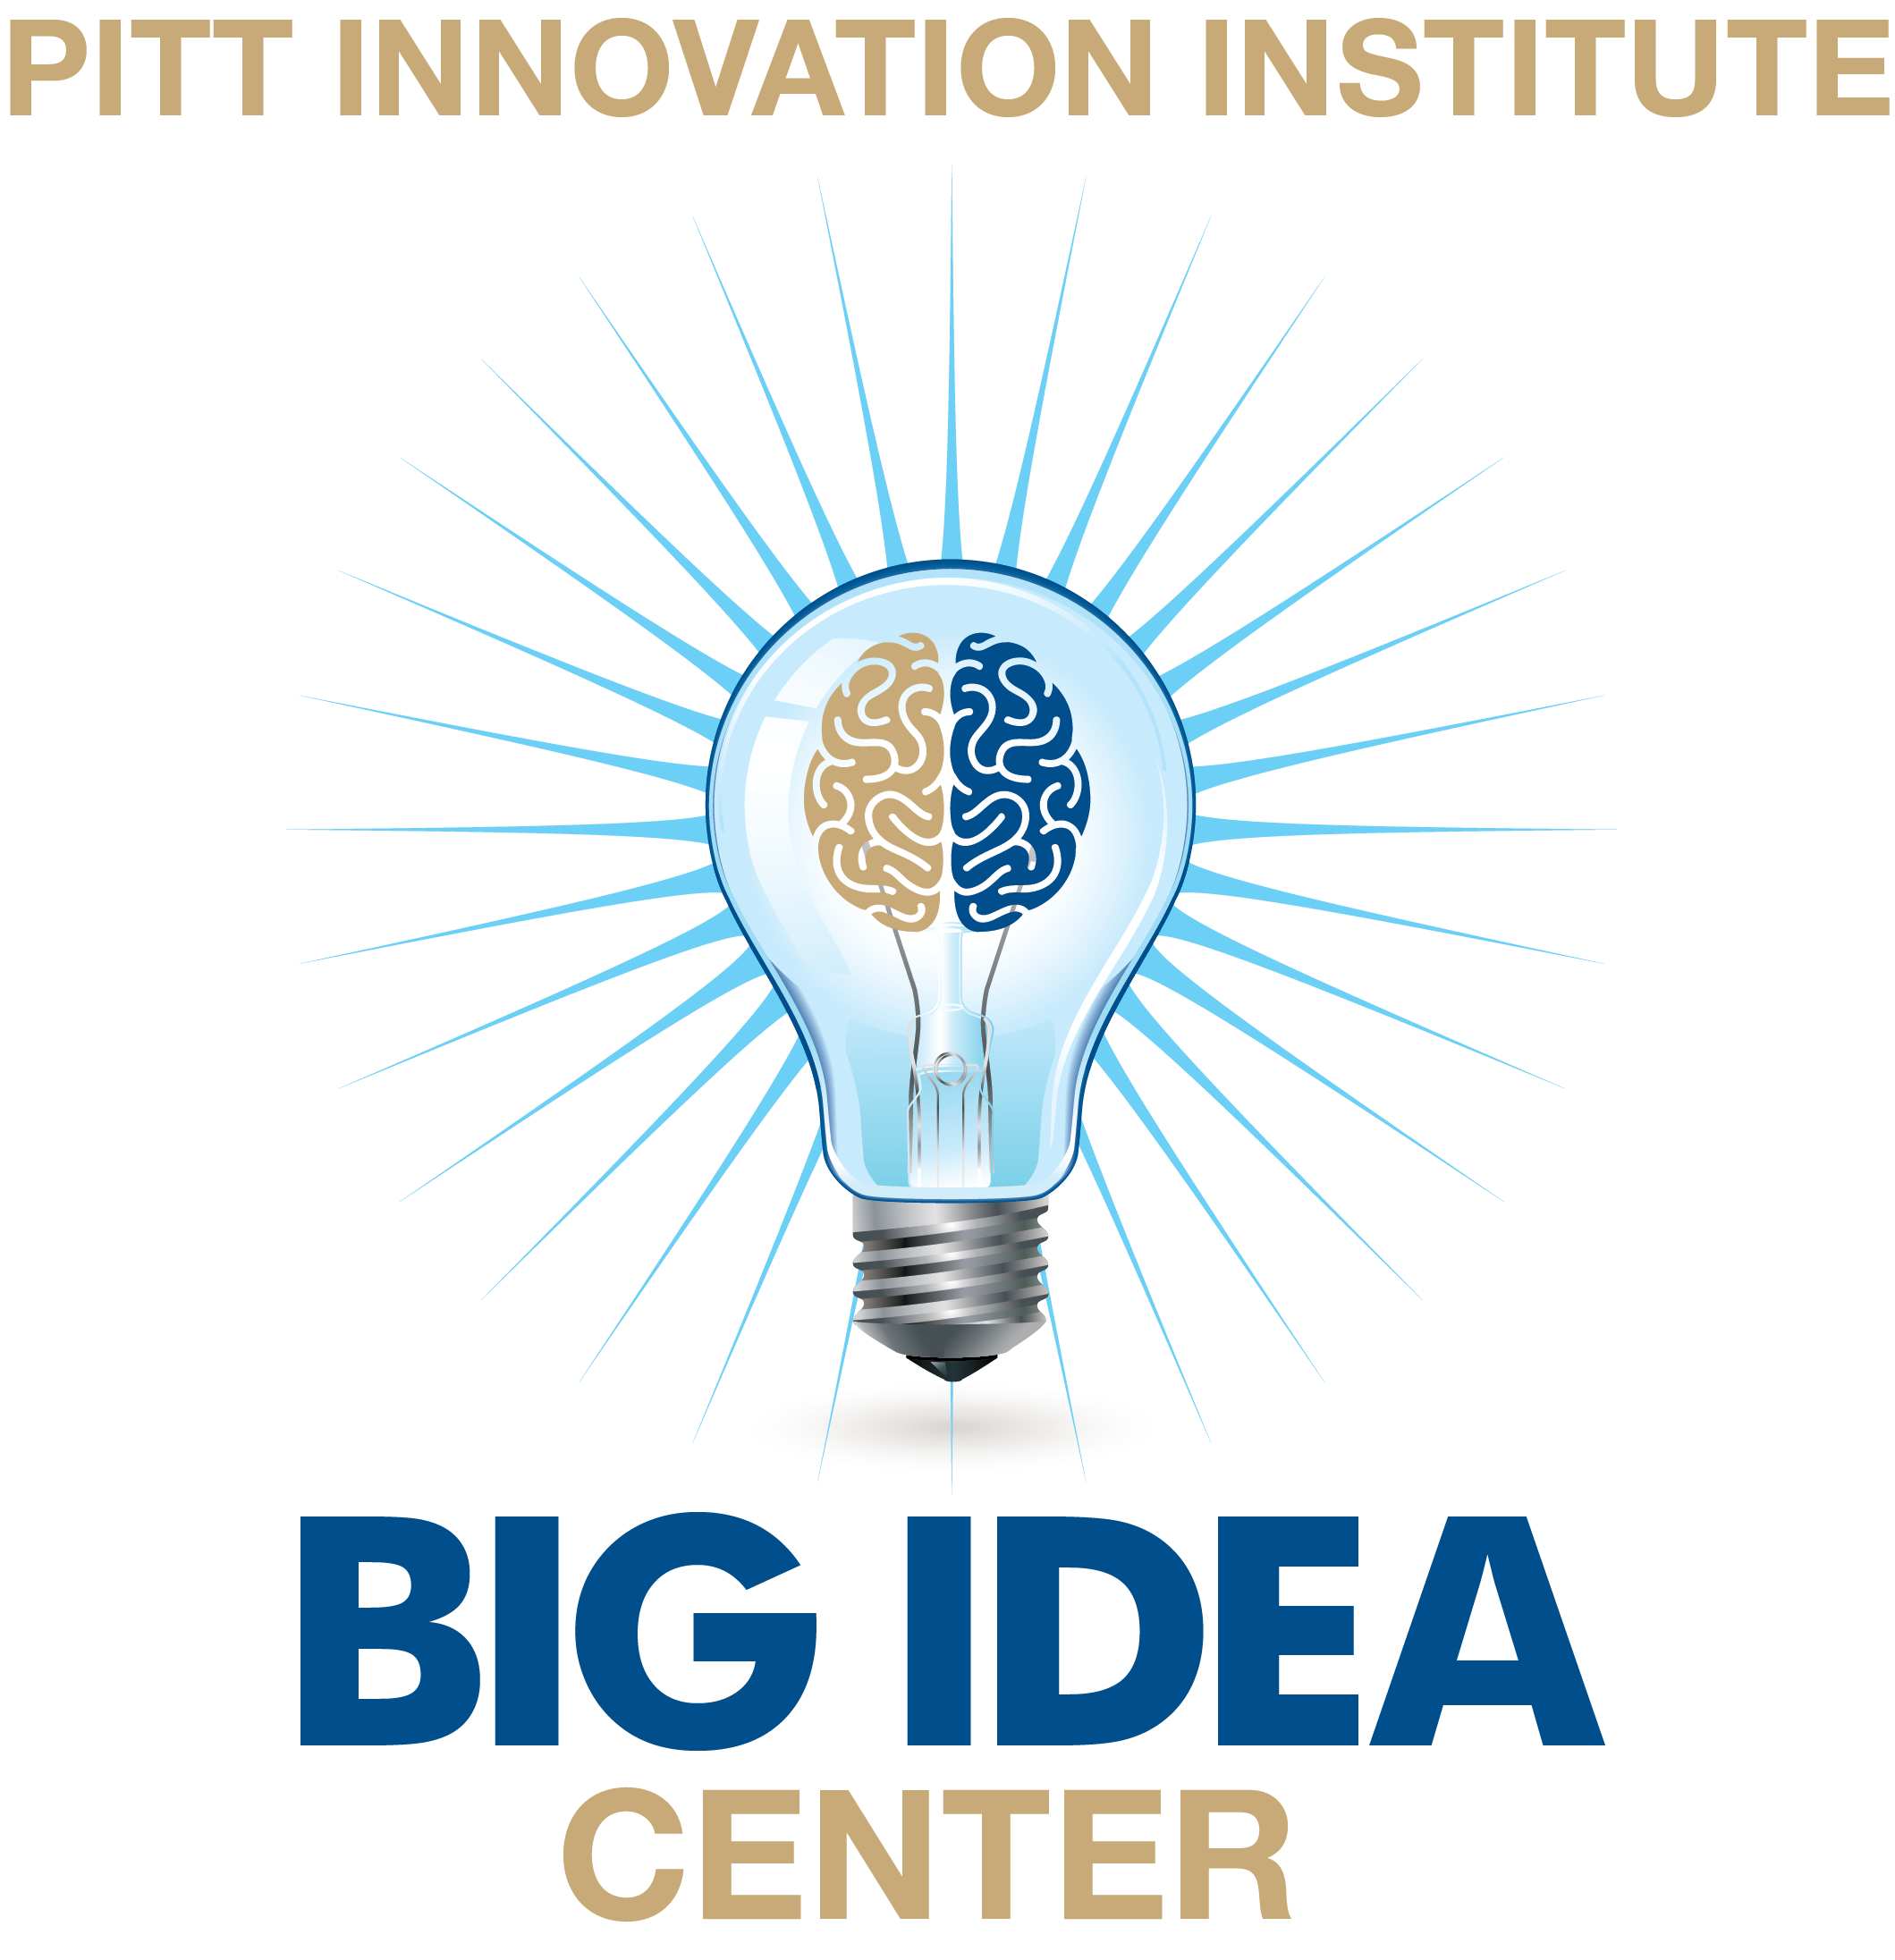 BiigIdeaCenter_2018_a part of the II